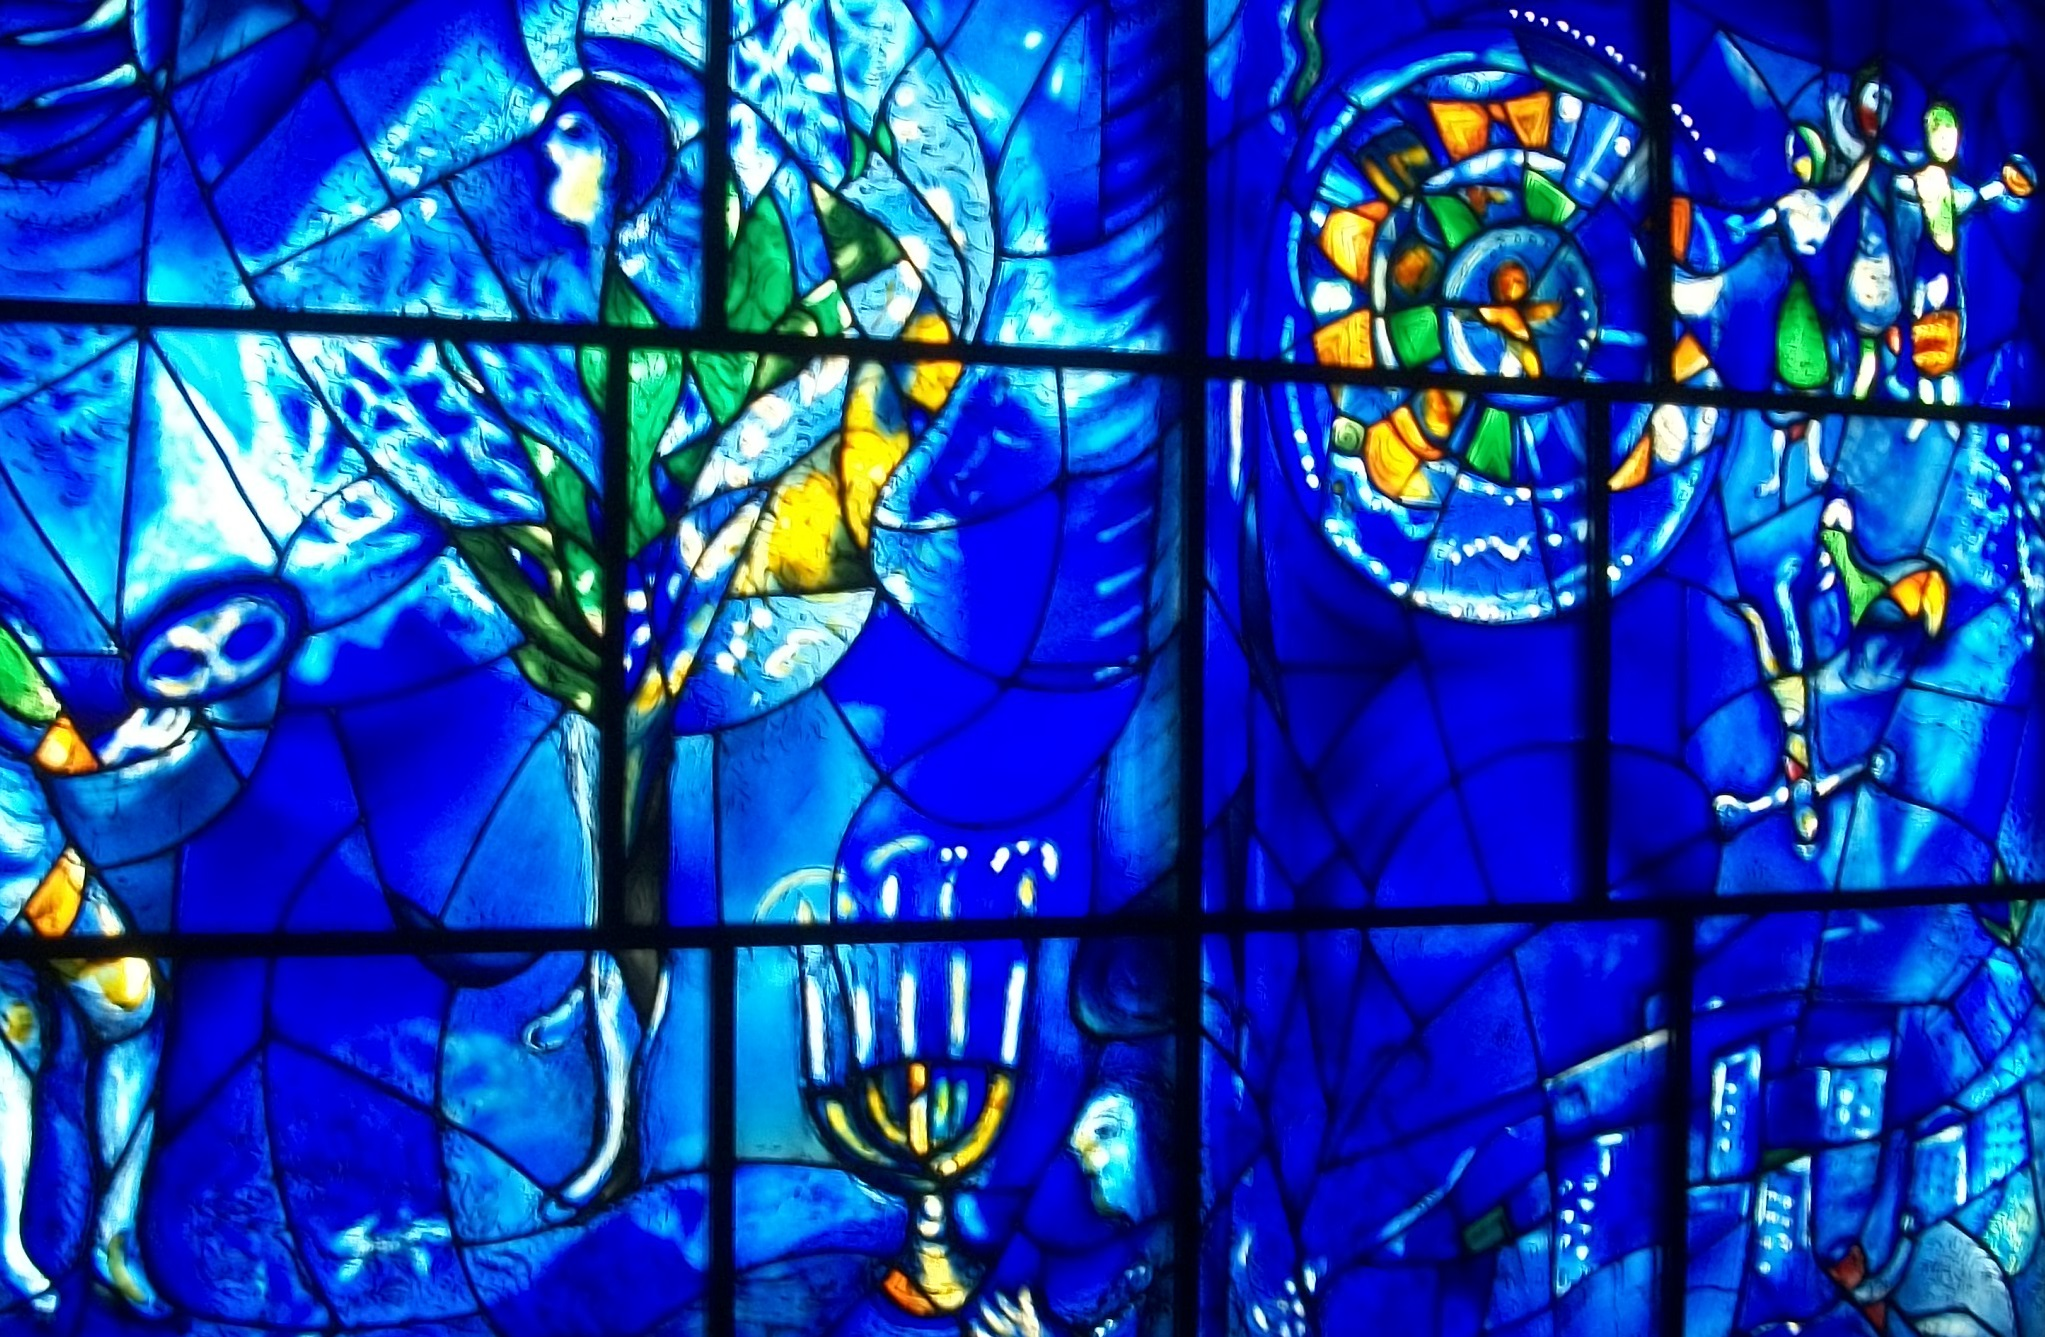 Close up picture of stained glass windows.